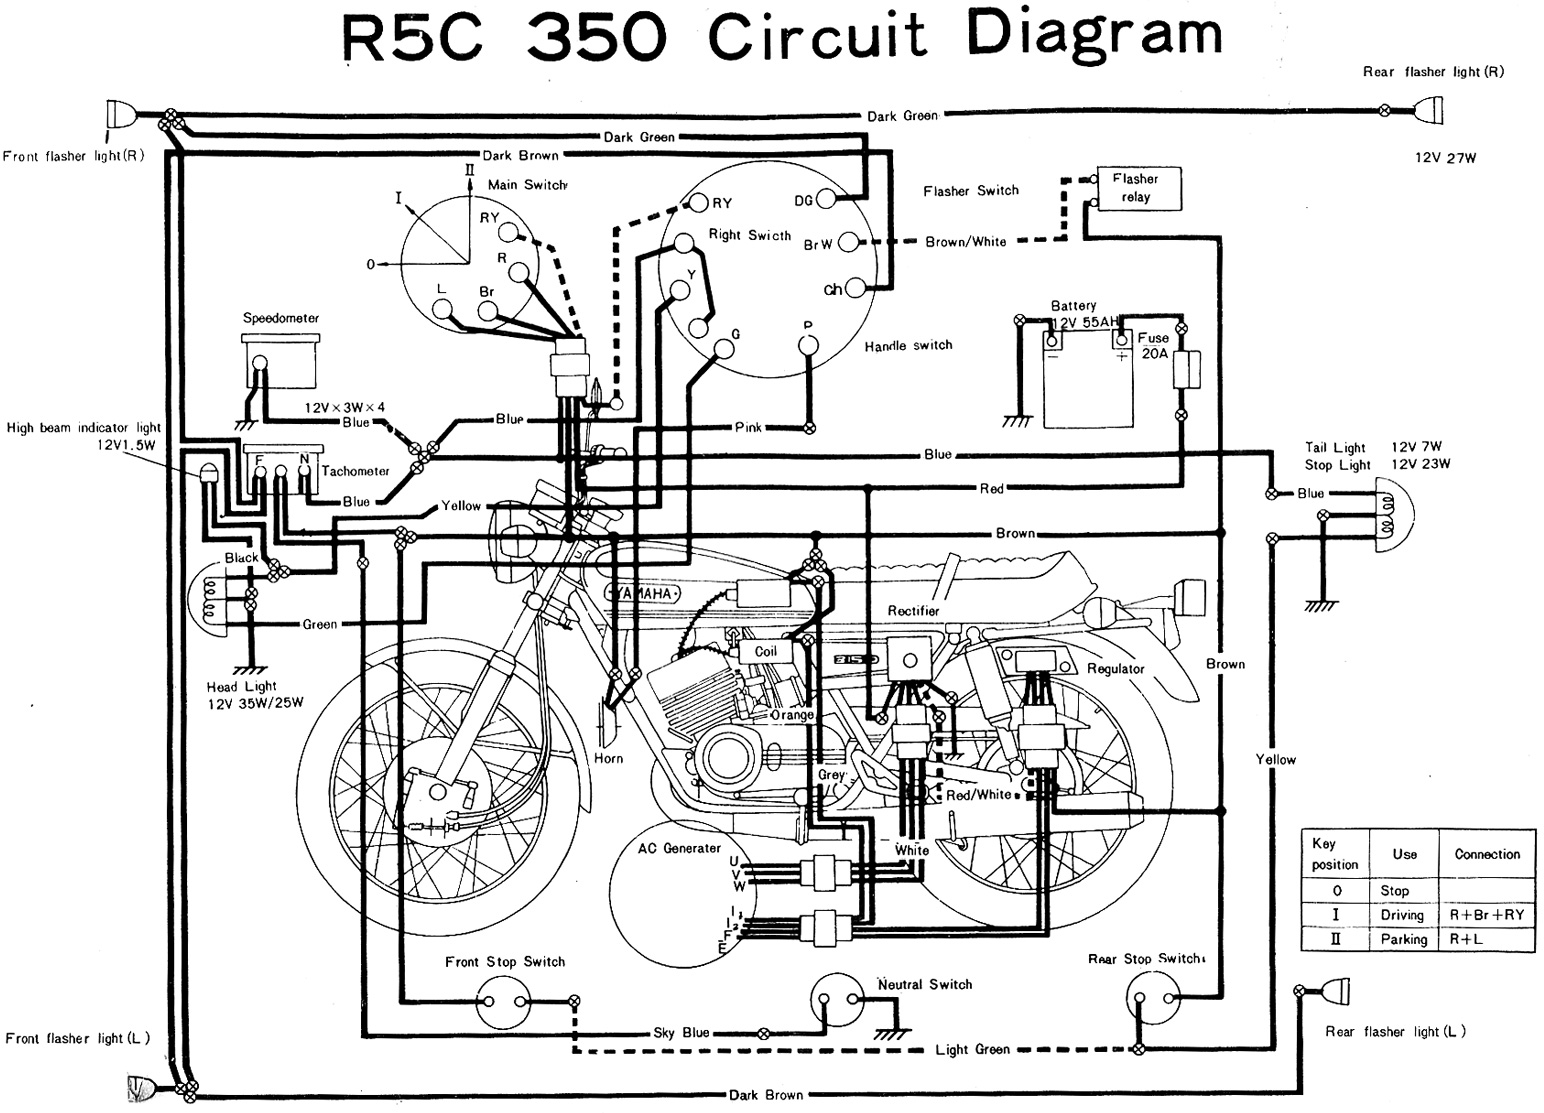 Yamaha RD350 R5C Wiring Diagram motorcycle wiring diagrams evan fell motorcycle worksevan fell Basic Motorcycle Diagram at mifinder.co